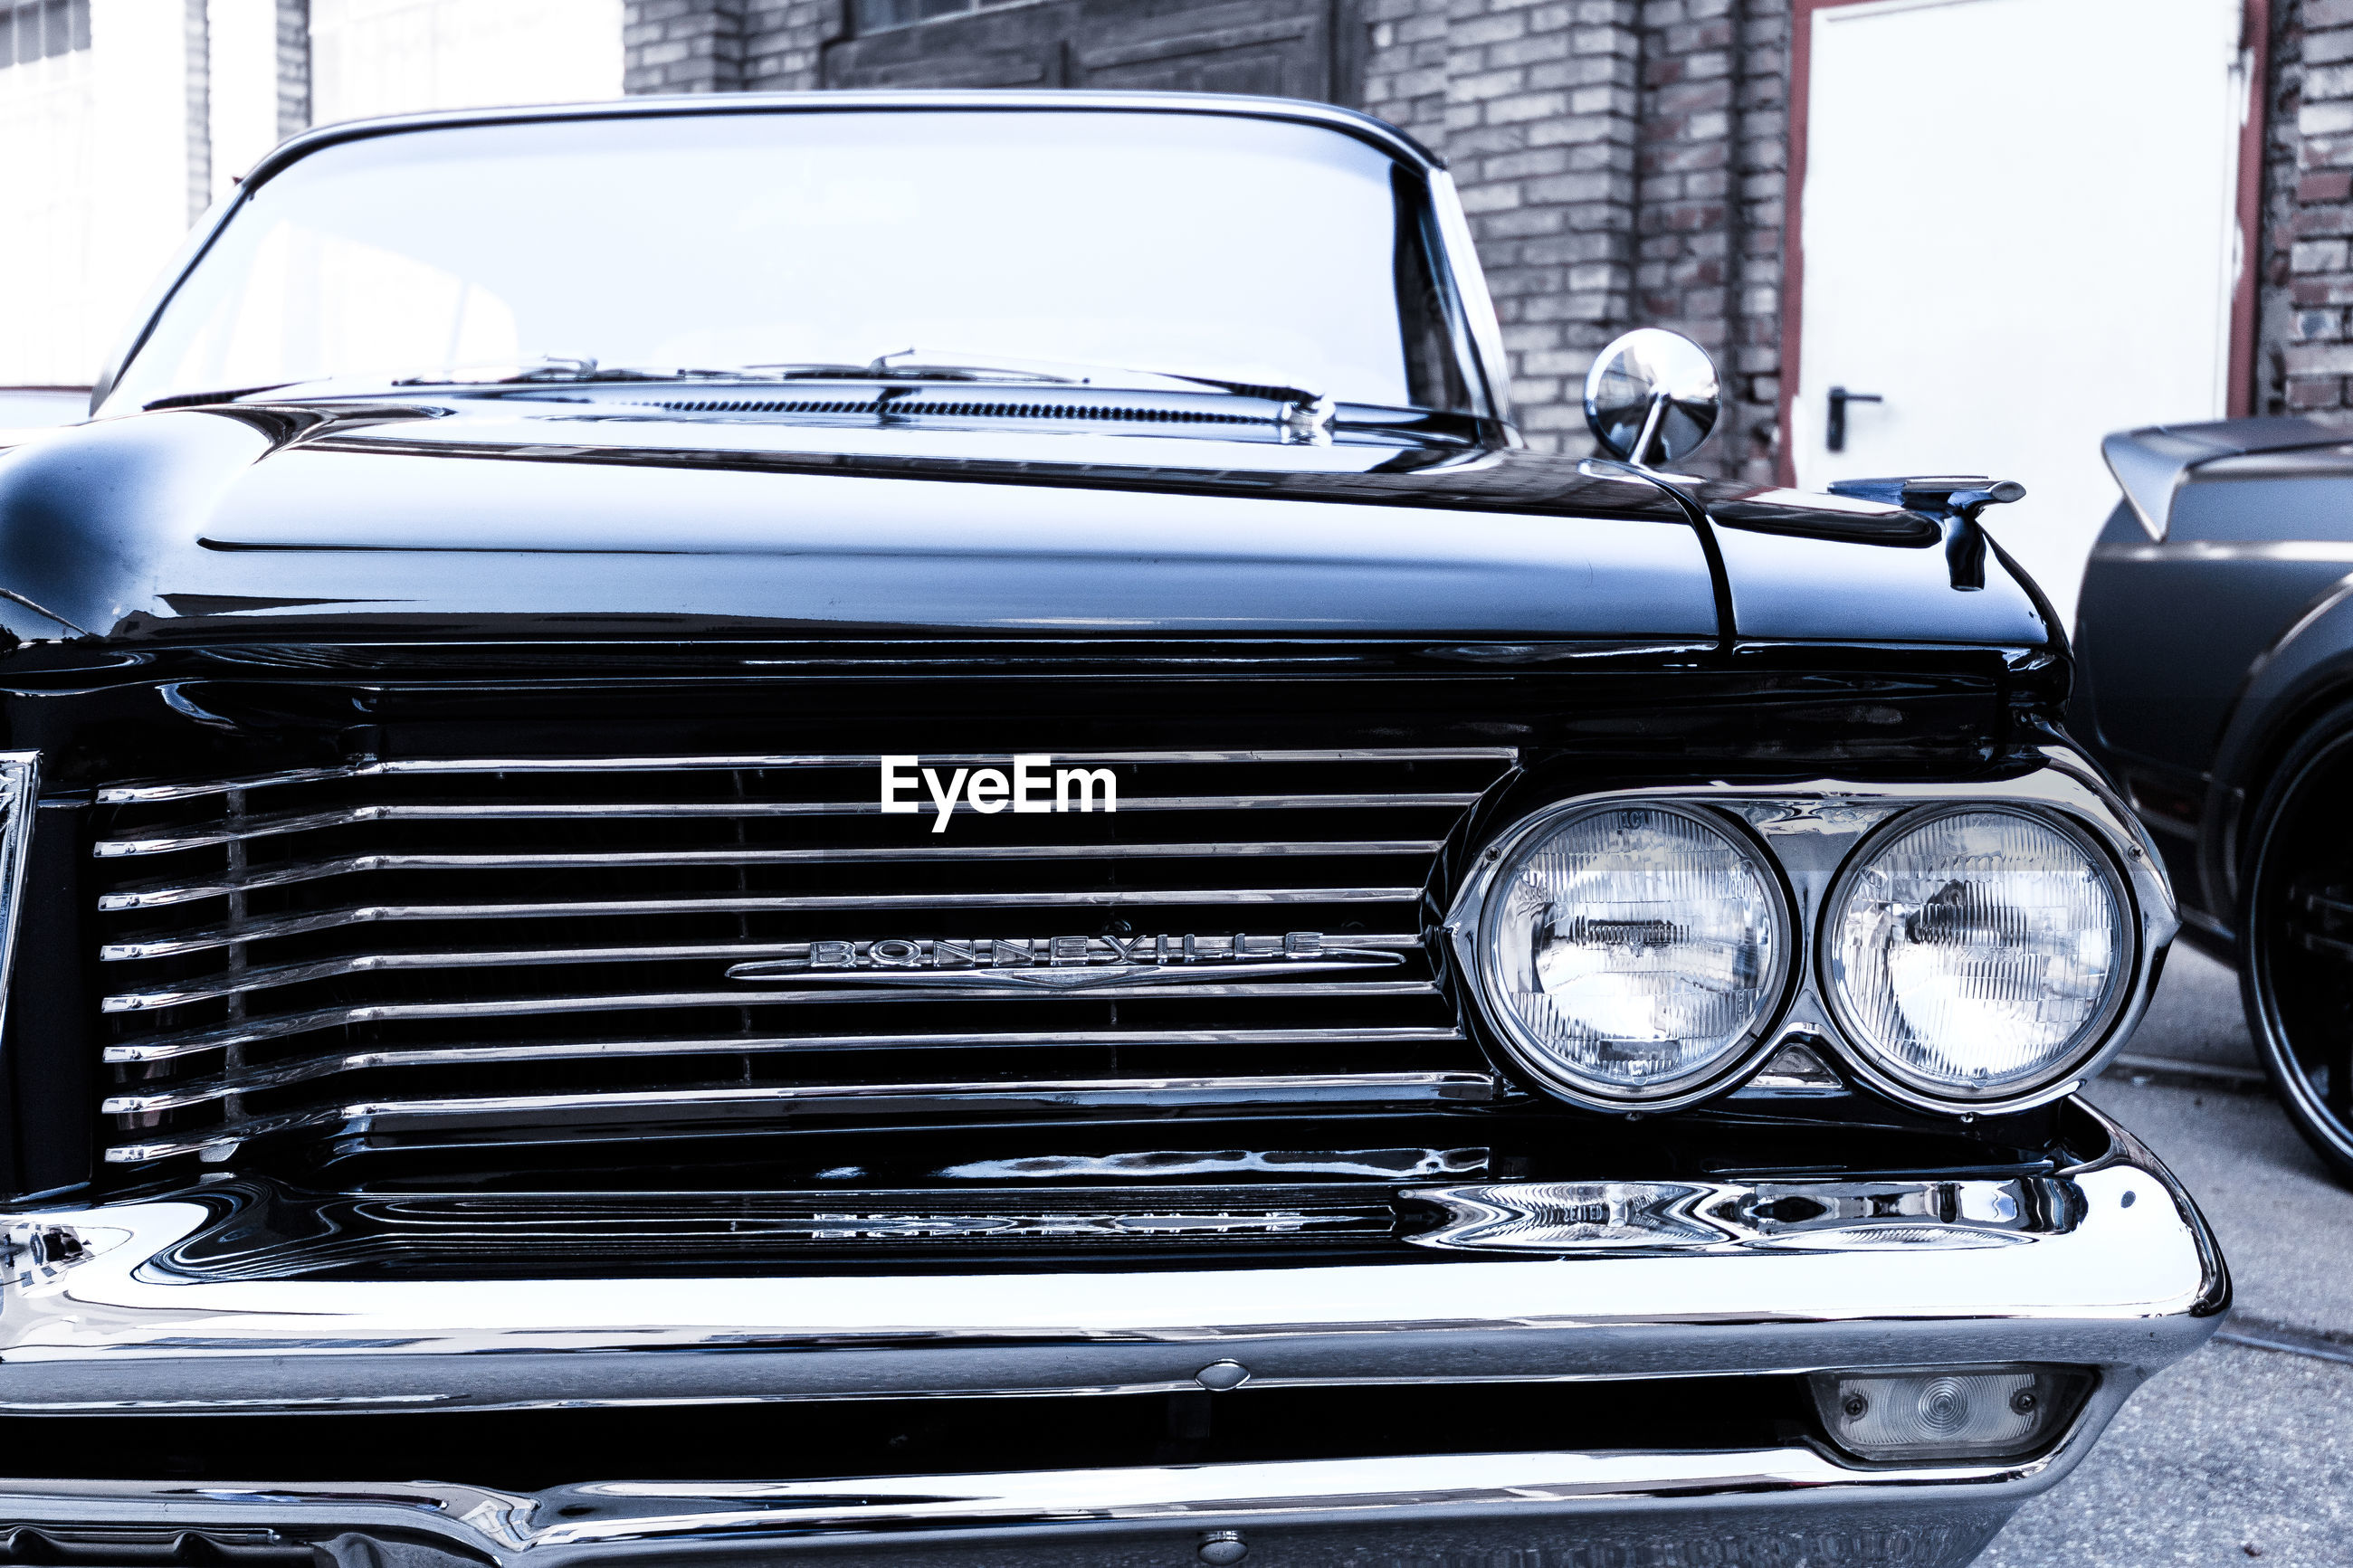 car, mode of transportation, land vehicle, motor vehicle, transportation, headlight, retro styled, vintage car, day, no people, stationary, close-up, metal, outdoors, luxury, vehicle hood, city, wealth, windshield, chrome, garage